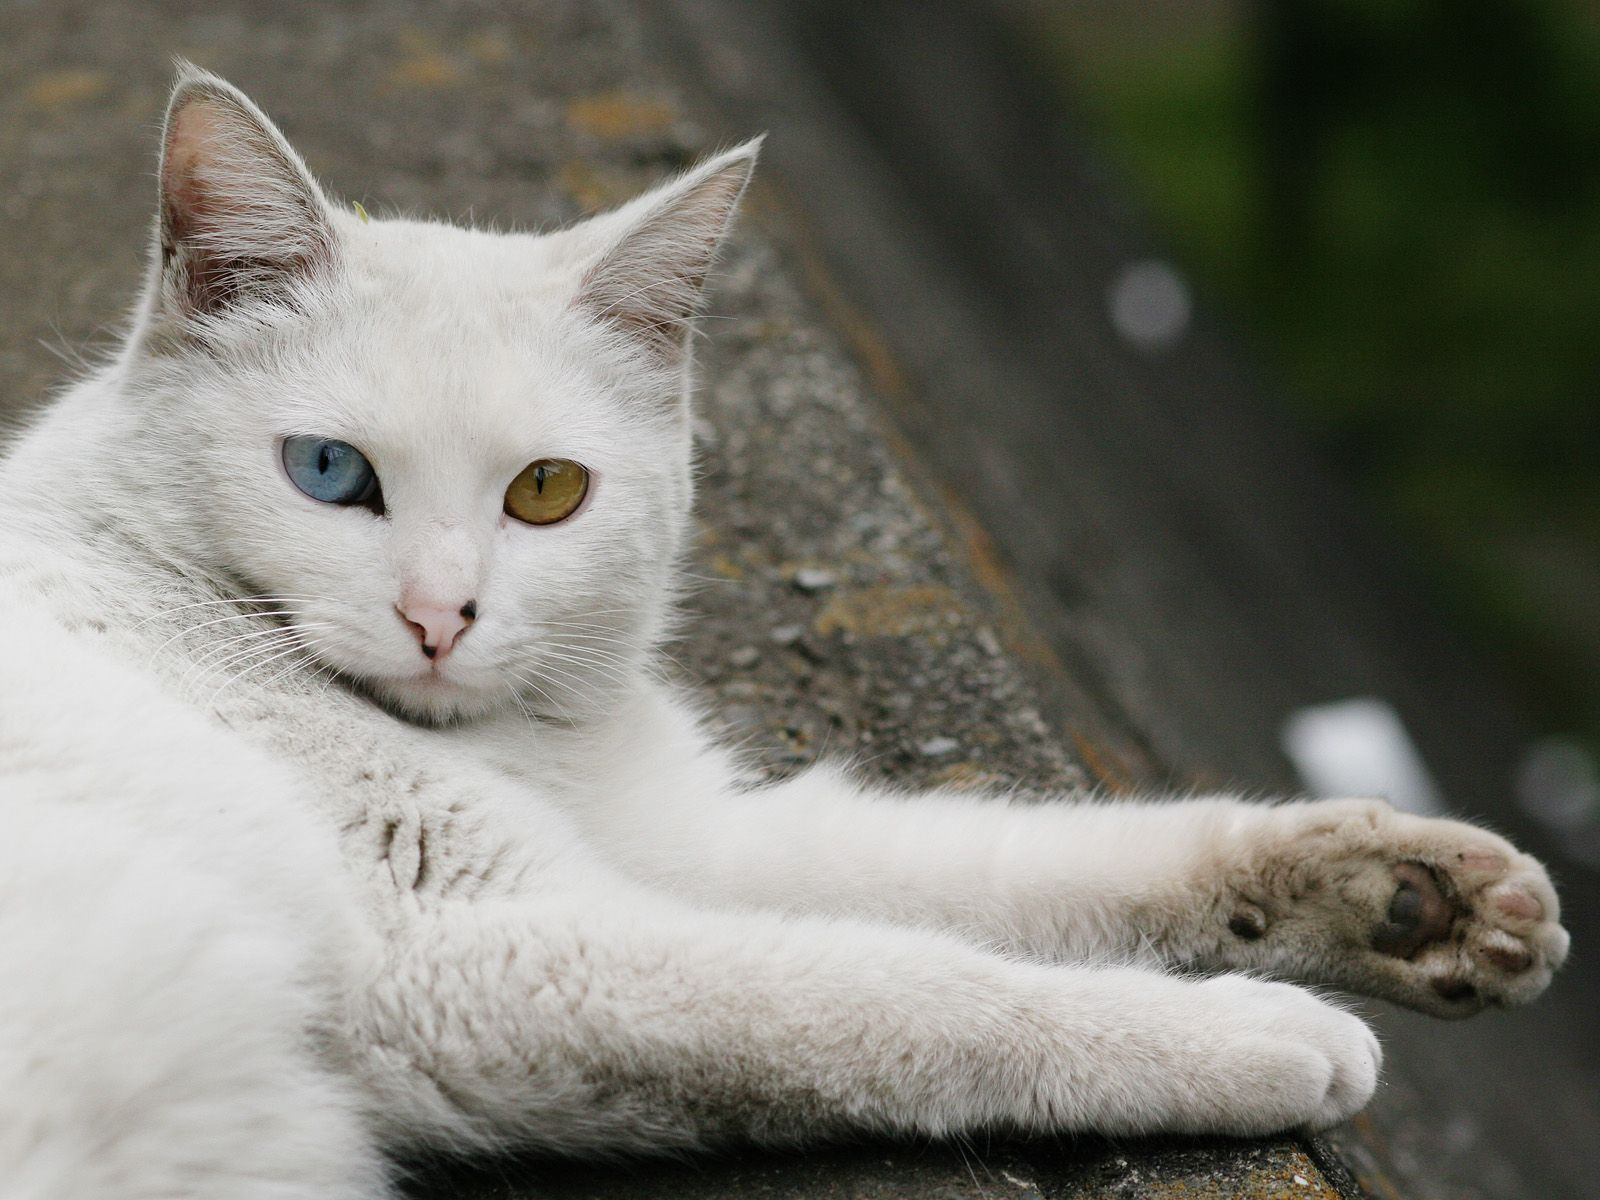 Homeless City Cat Image Eyes In Blue And Yellow White